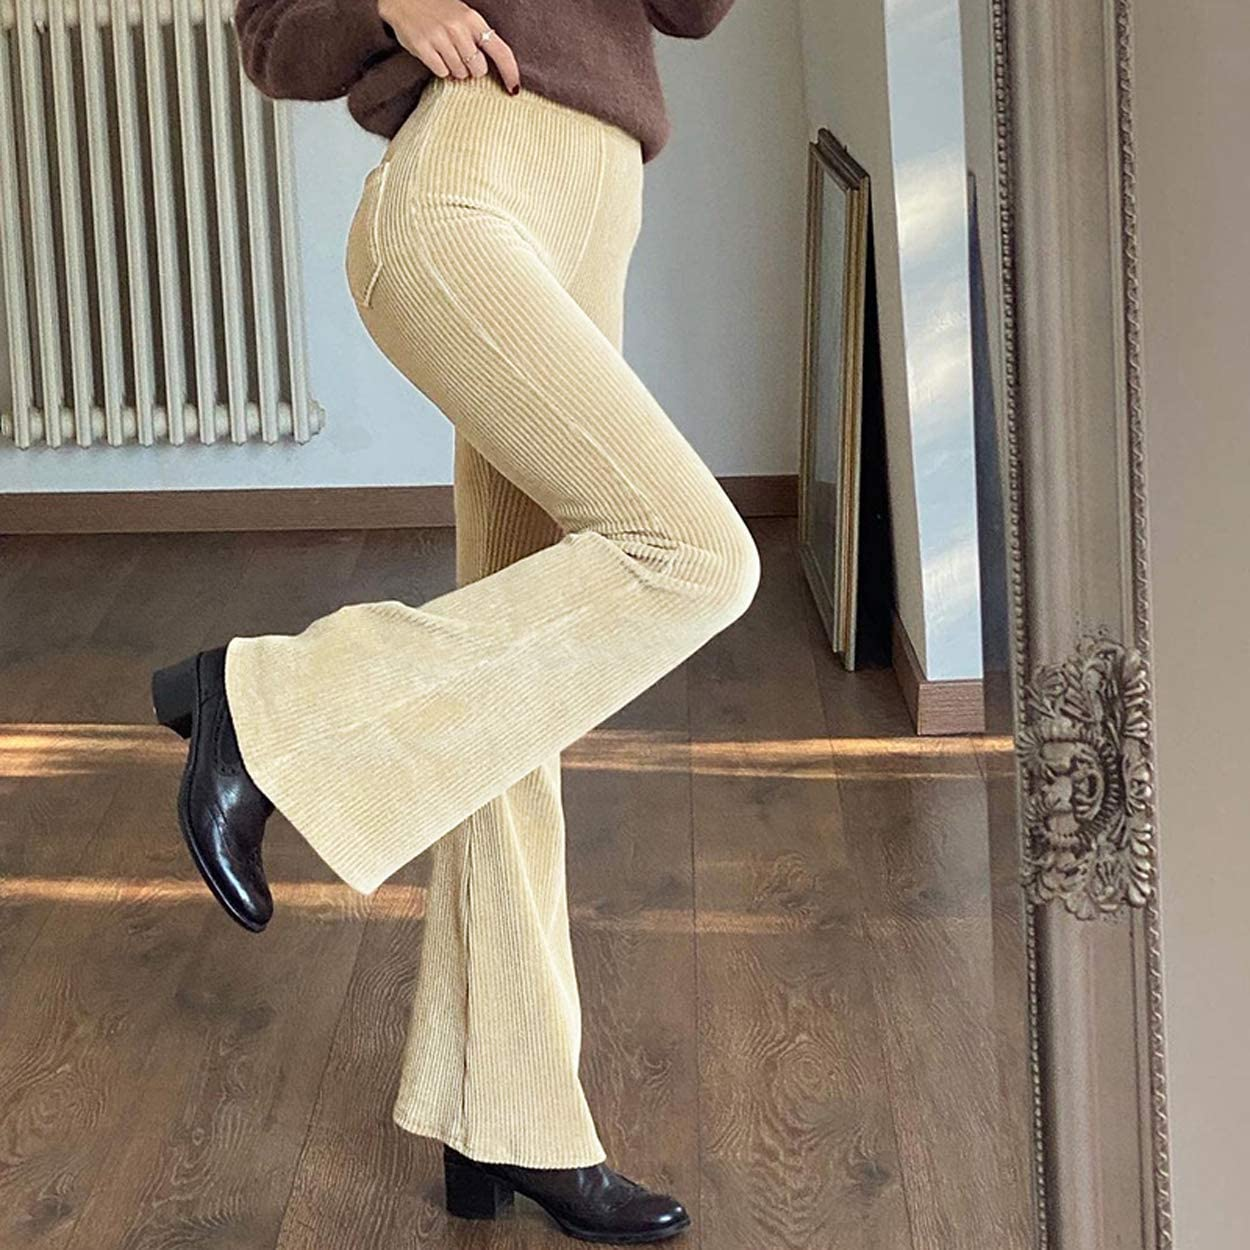 Women High Waist Corduroy Solid/Patchwork Pants Vintage Y2K Straight Leg Baggy Trousers Casual Hipster Streetwear